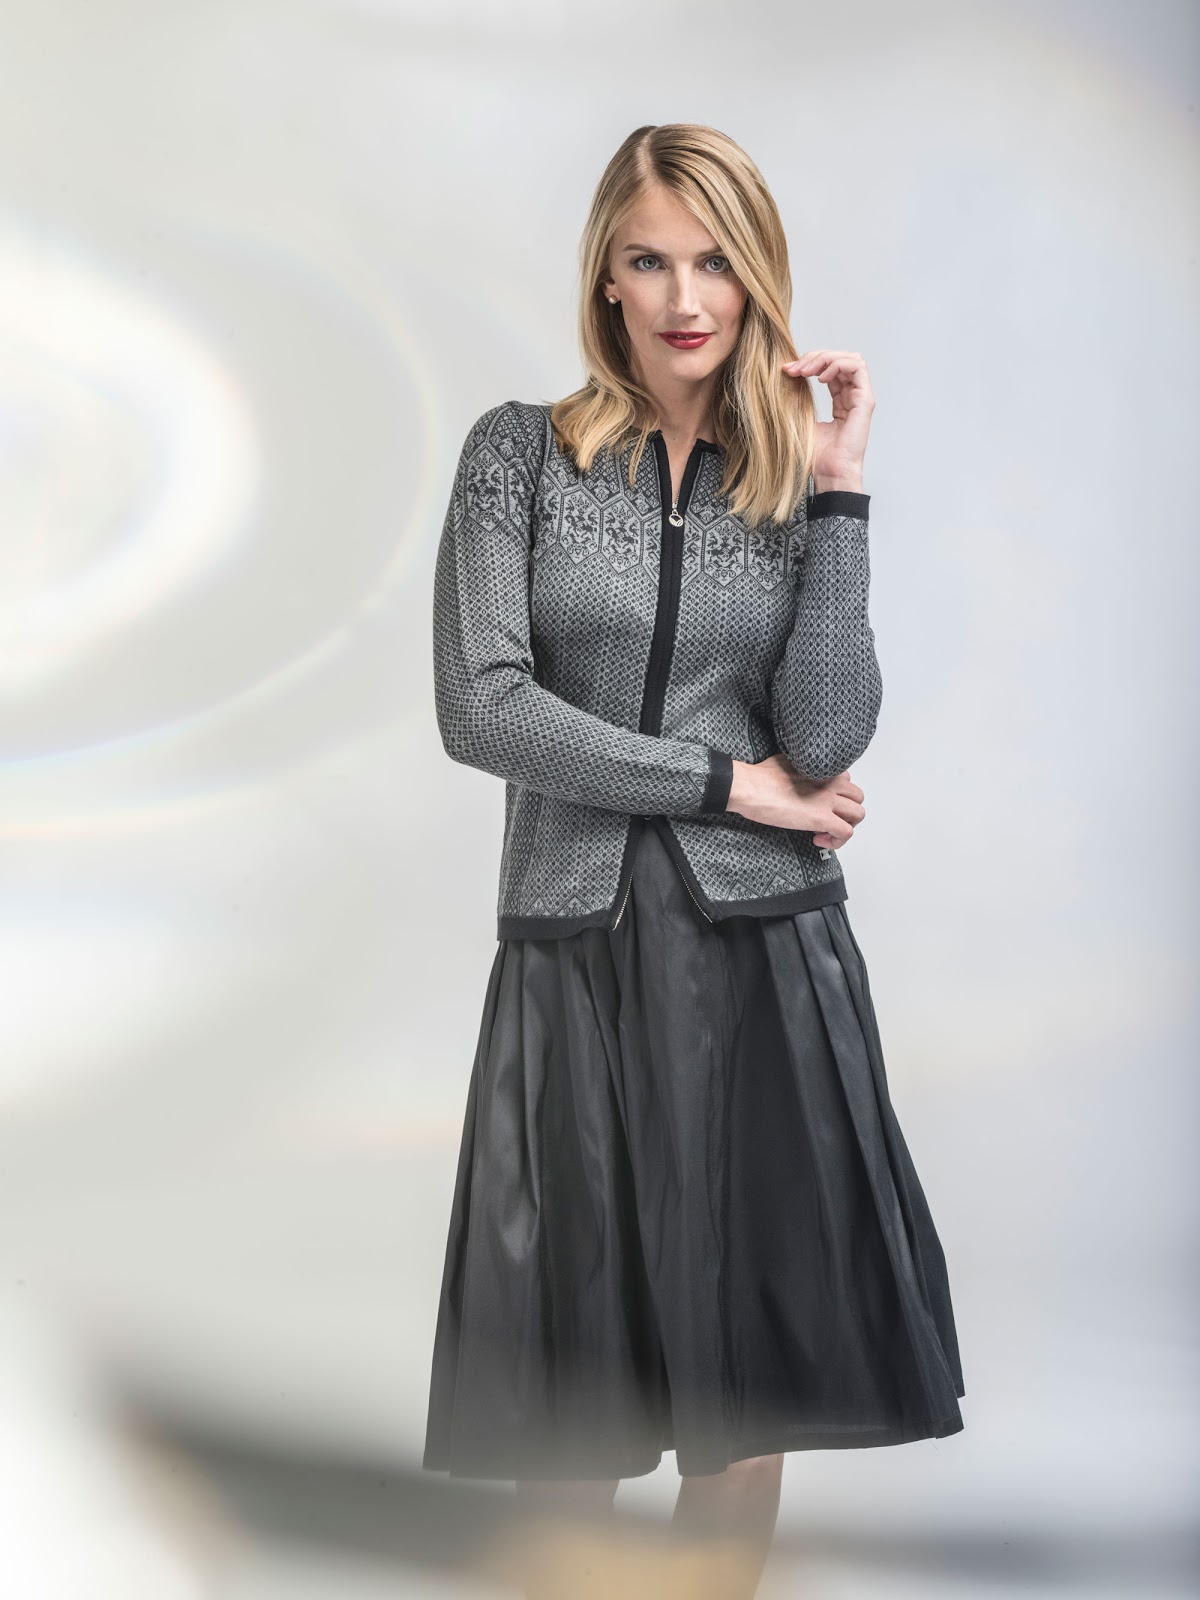 af50720a8ad88 This jacket can also turn into an elegant look for parties after work or  school. Perfect Choice for work, school and evenings out!